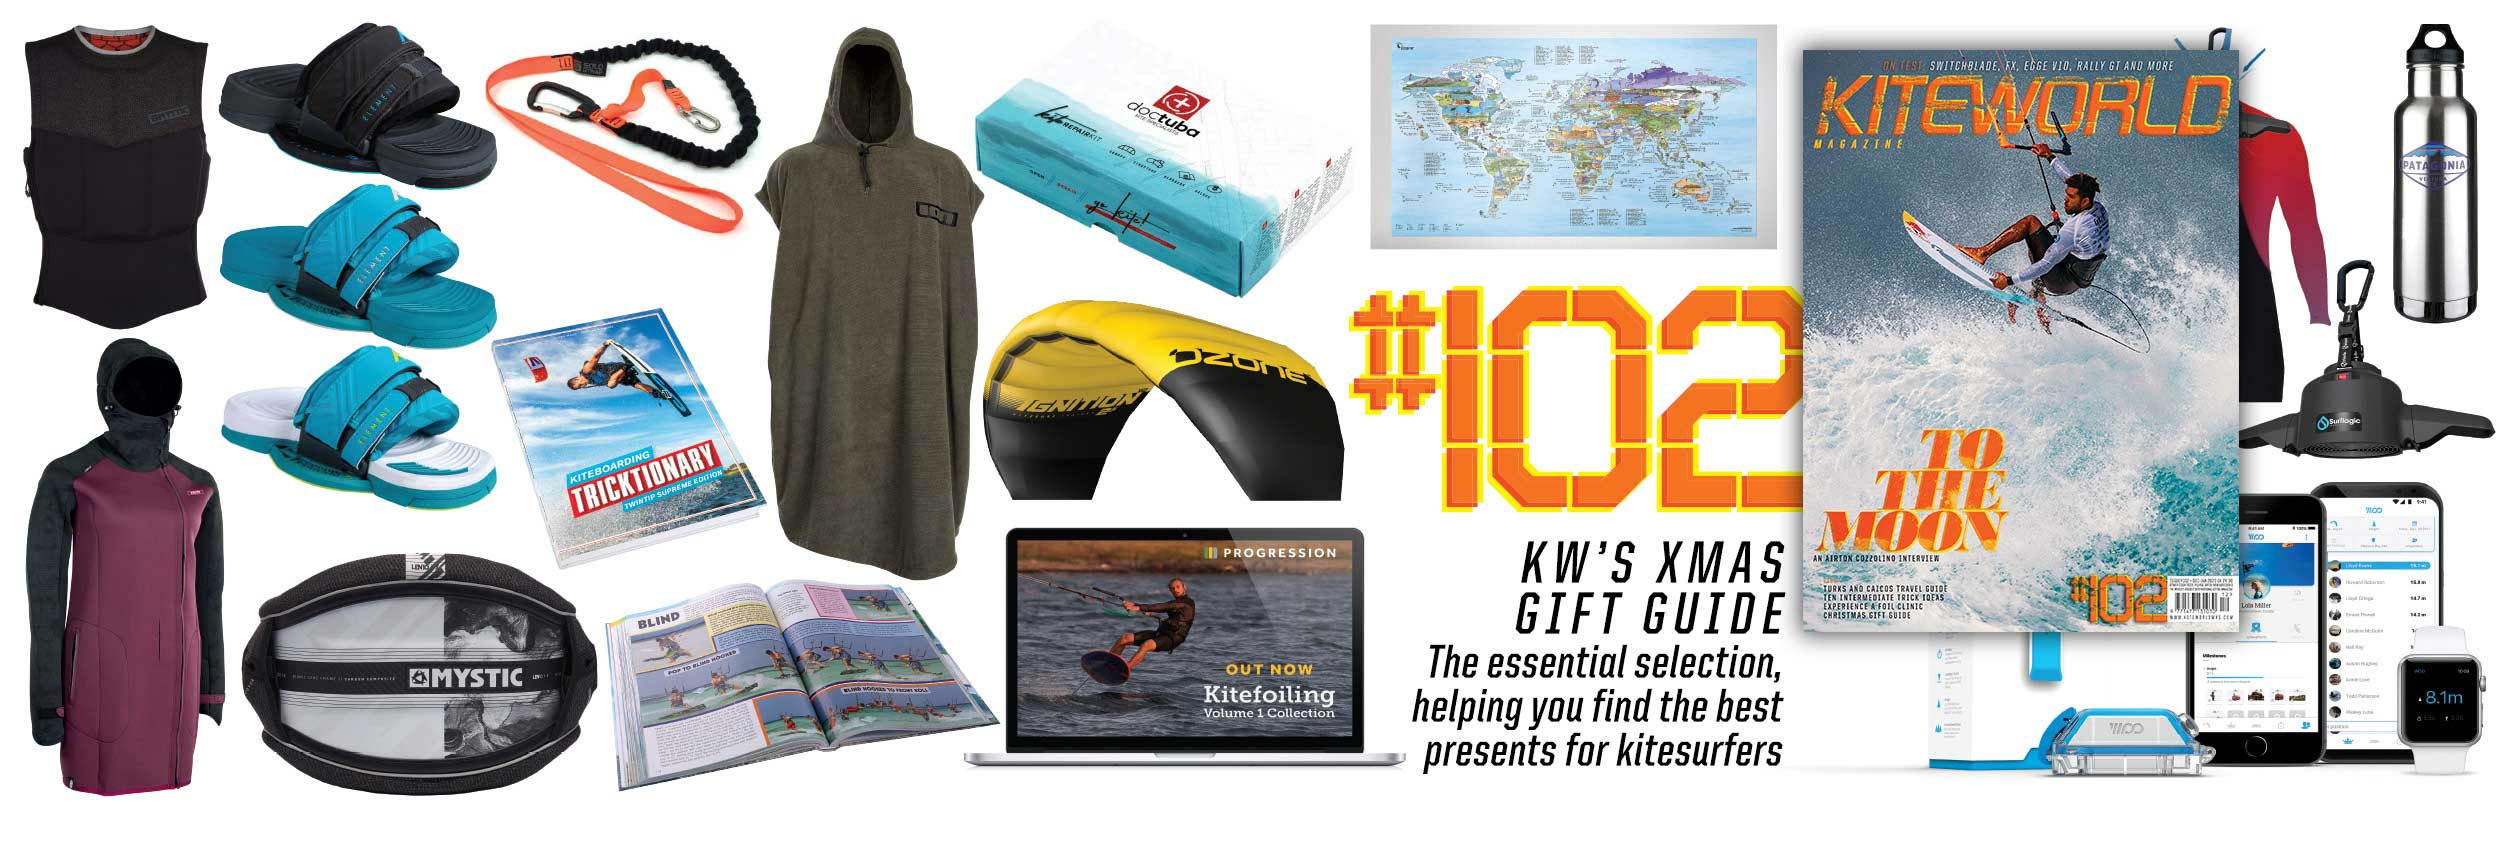 Kitesurfing christmas gifts Kiteworld Magazine Issue 102